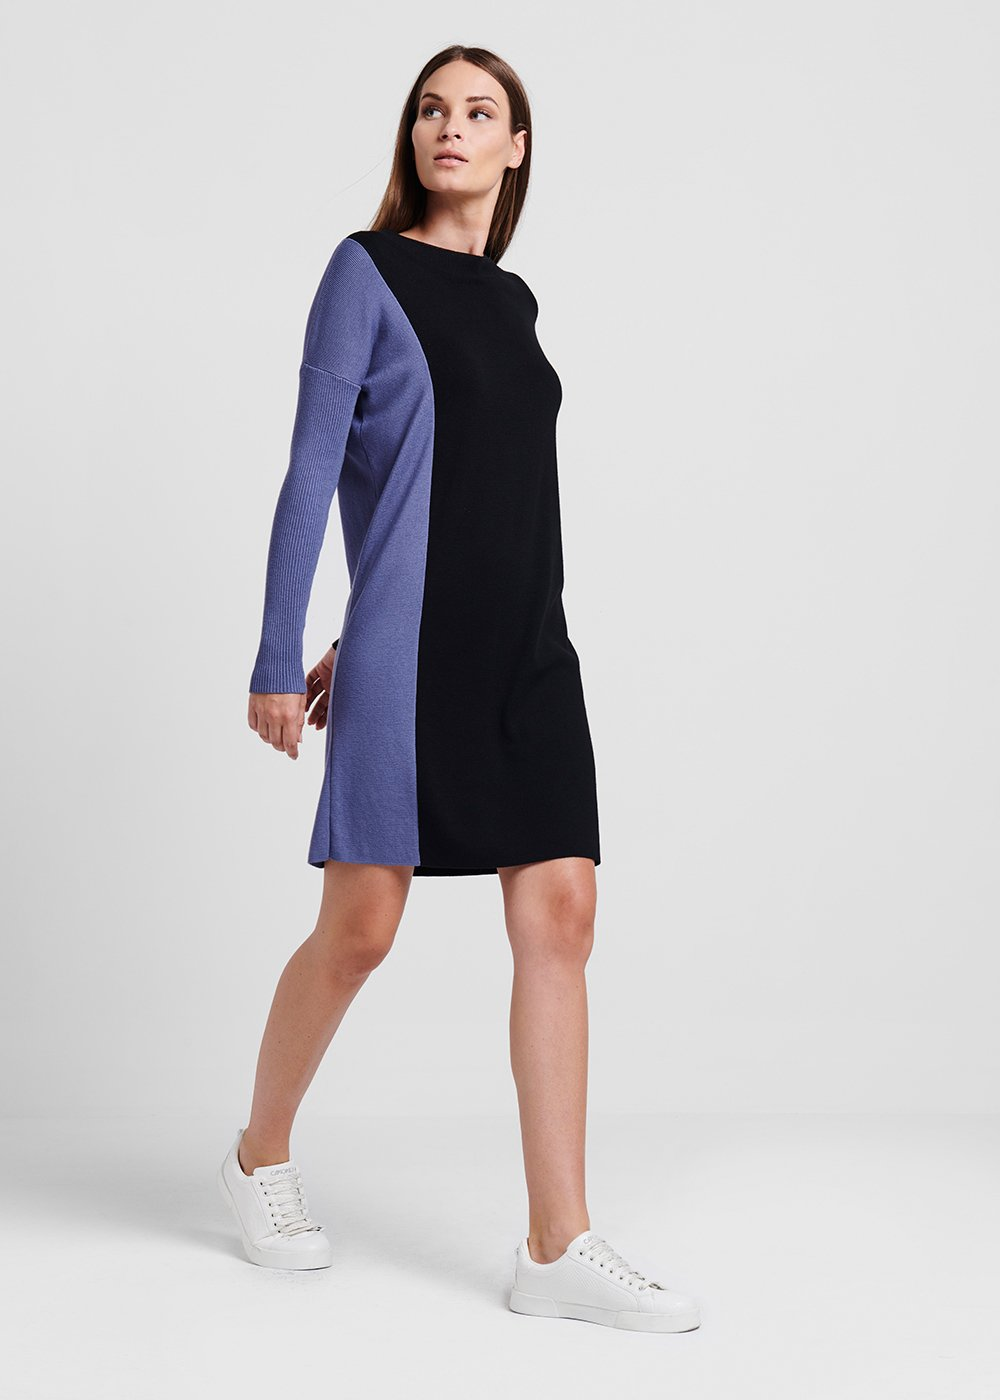 Knit dress in two-tone viscose - Black / Materia - Woman